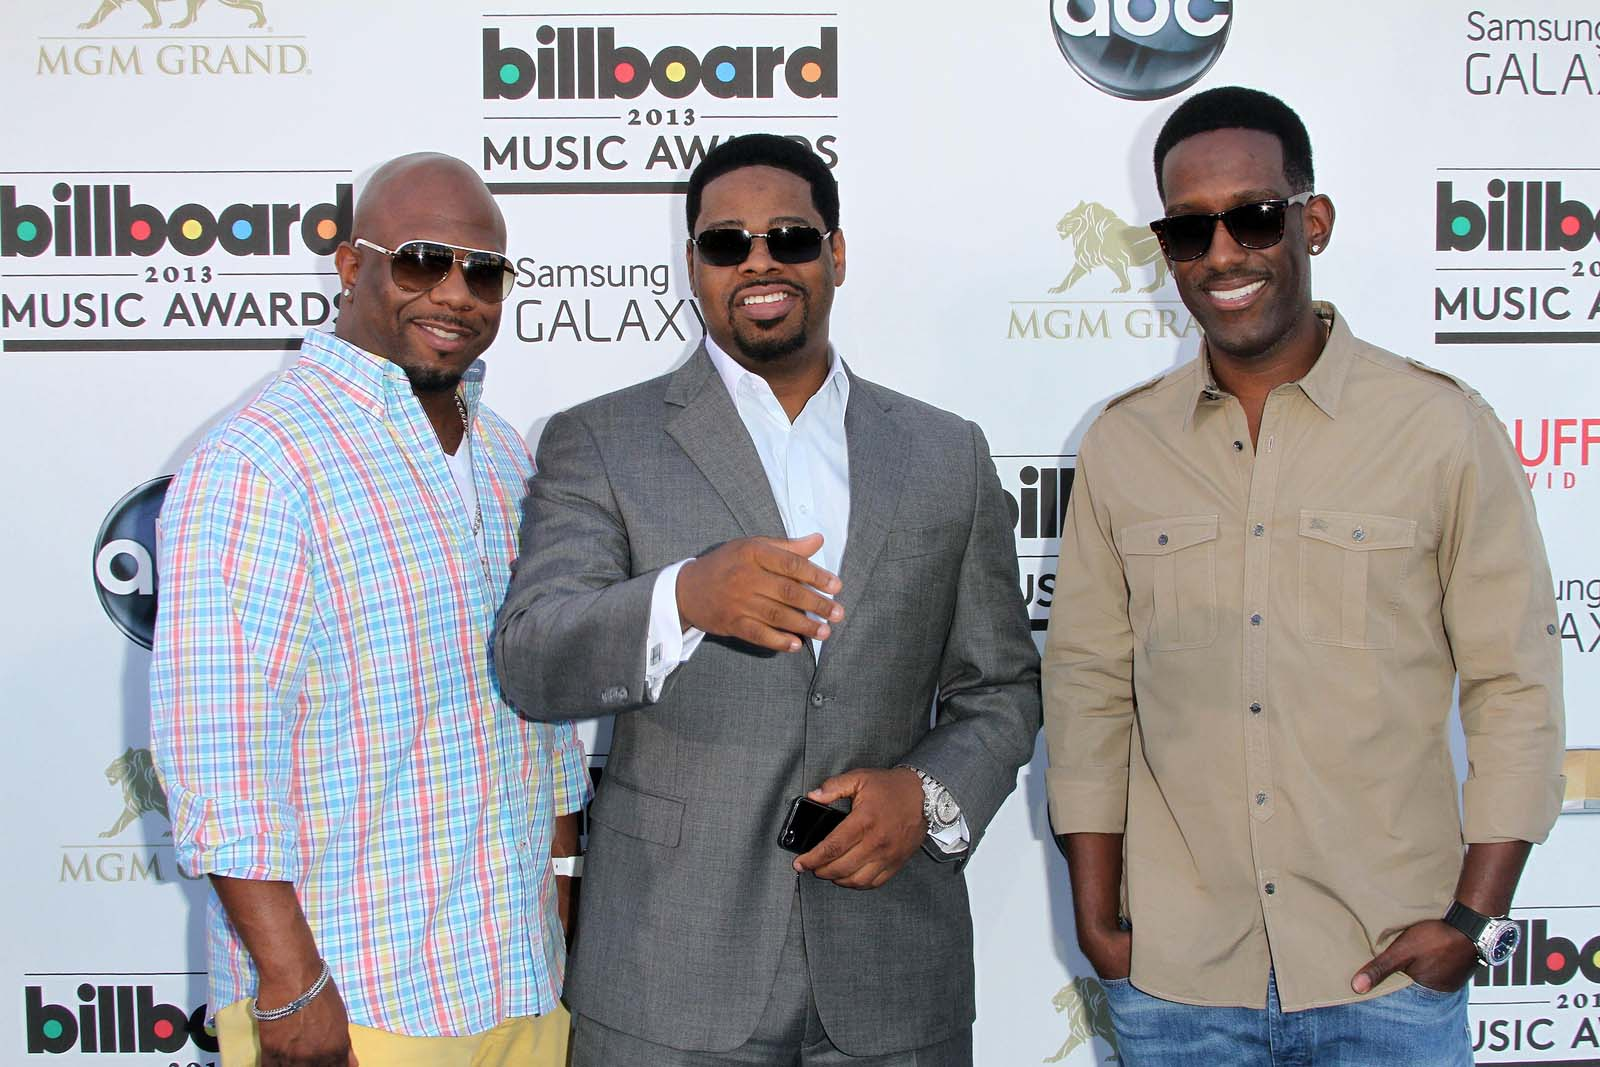 Boyz II Men on the red carpet, during Billboard Music Awards Arrivals, MGM Grand, Las Vegas, 2013